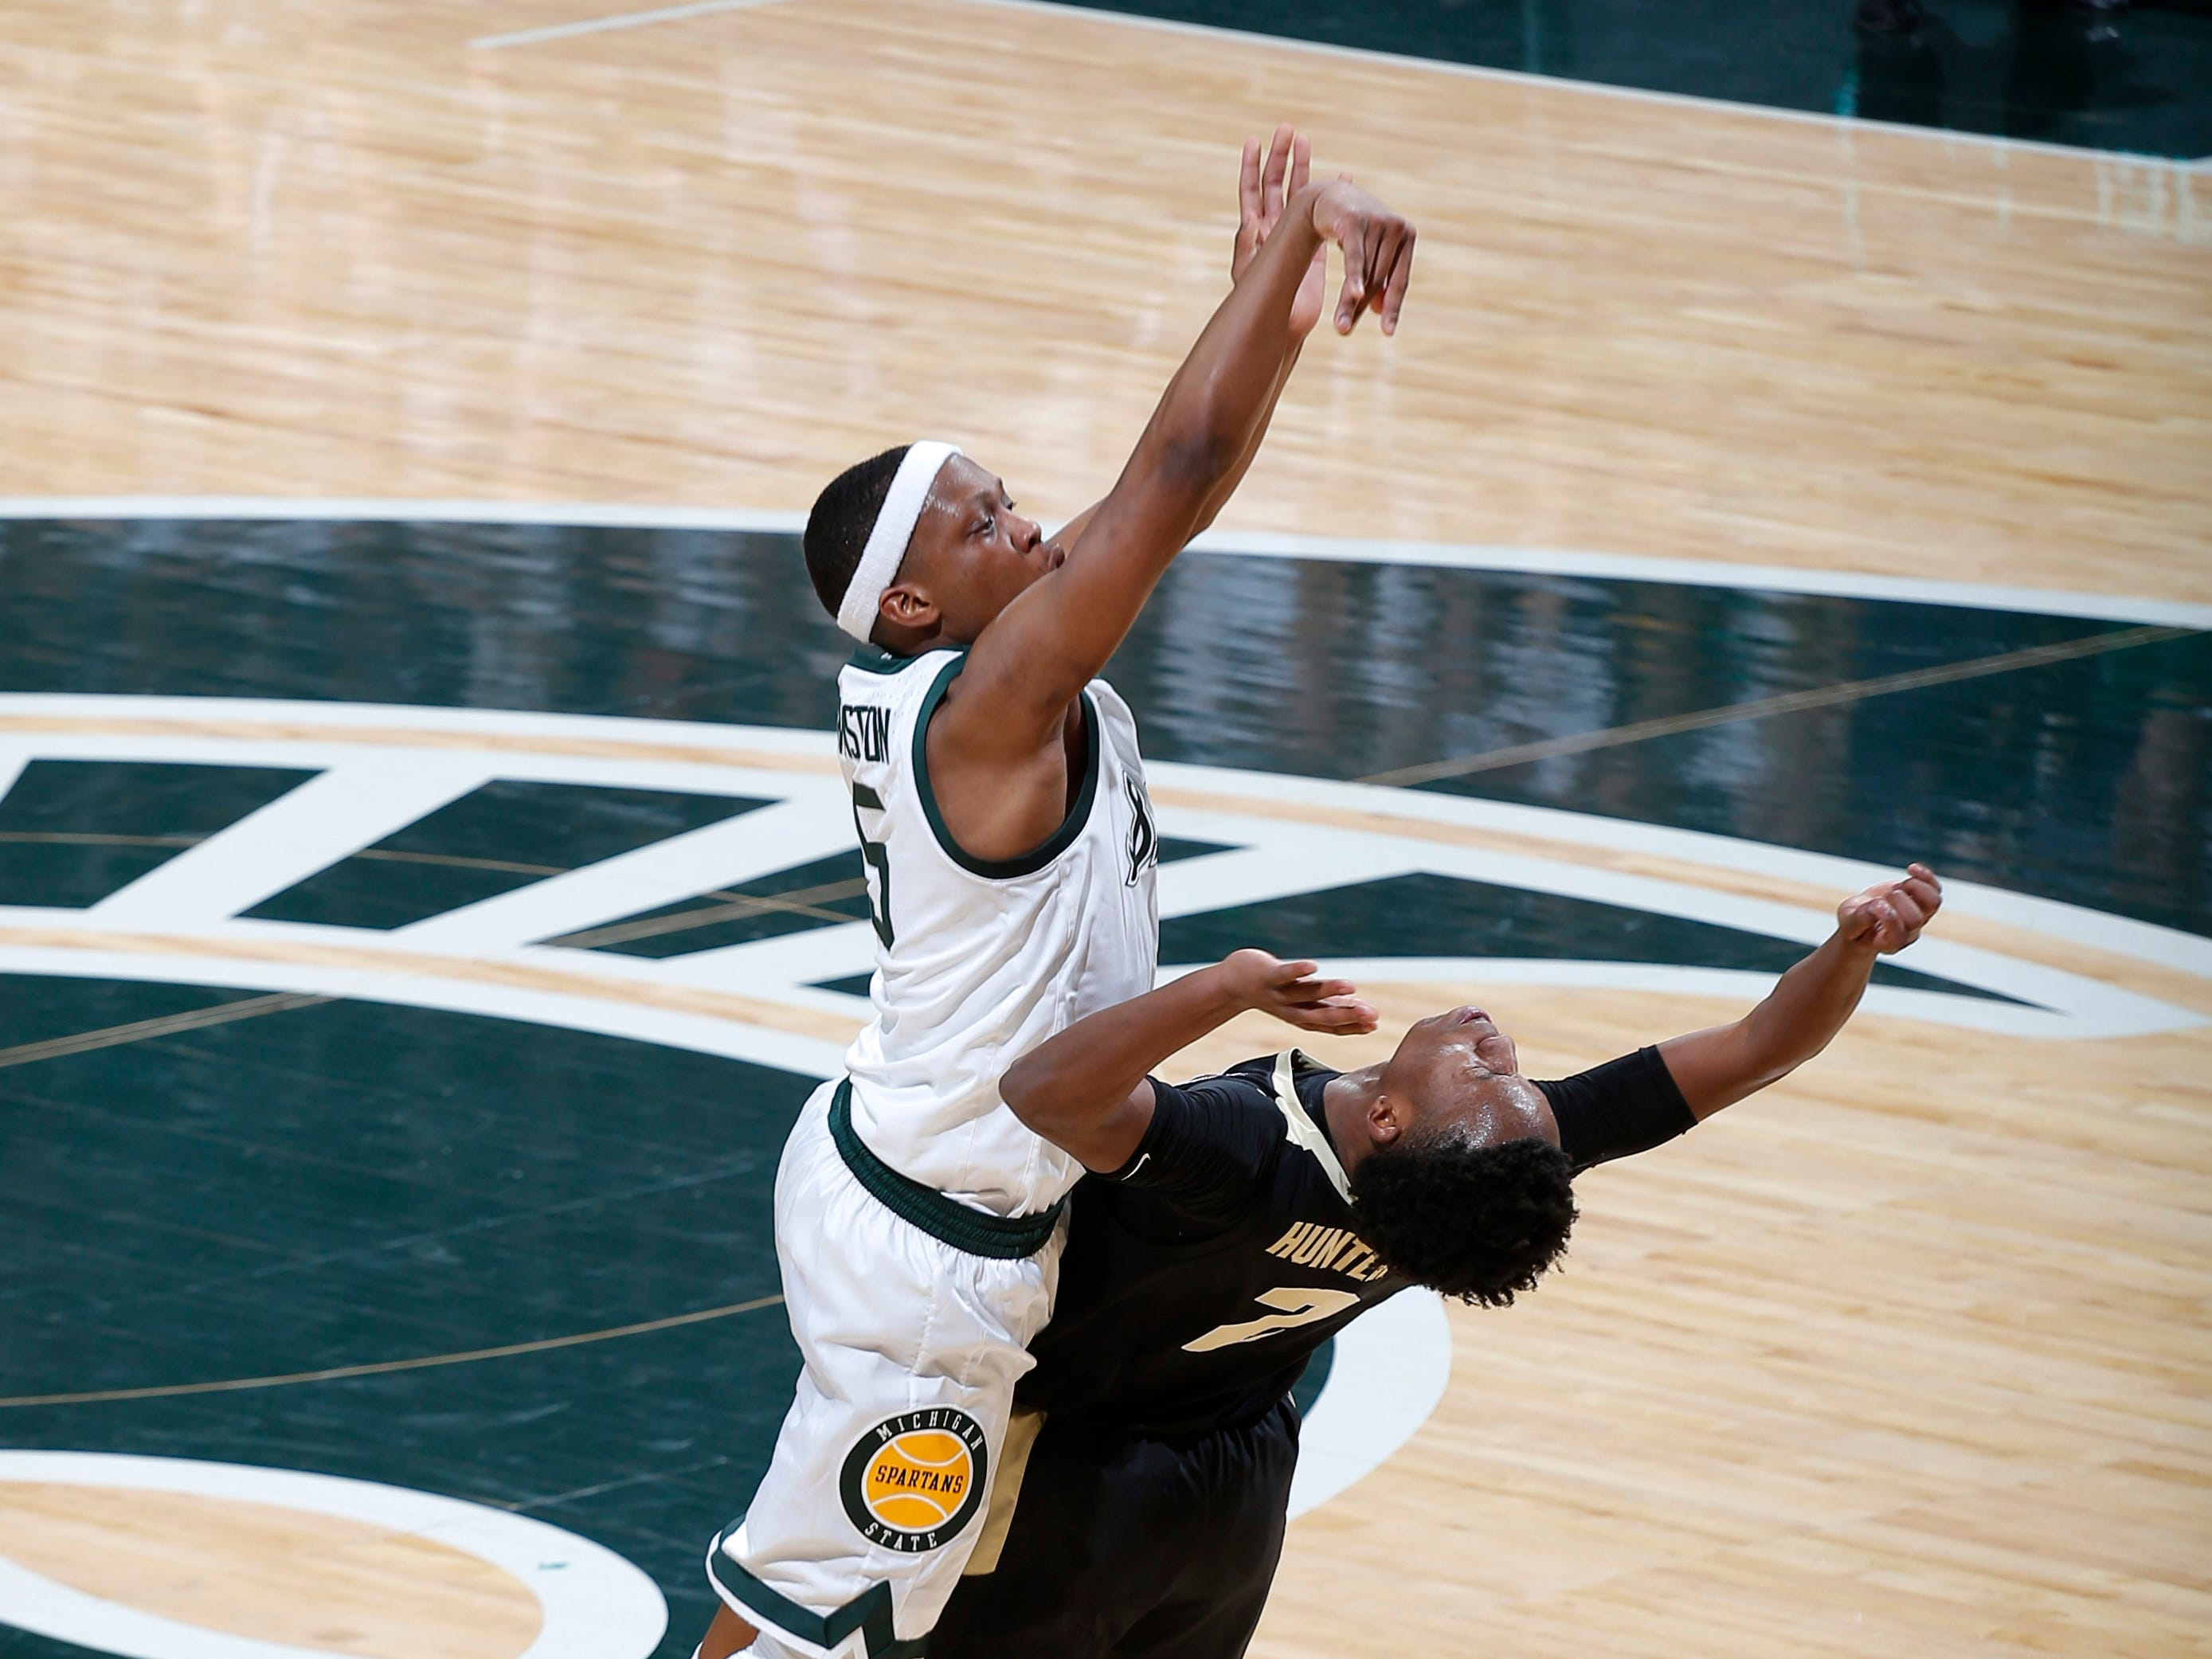 Michigan State's Cassius Winston, left, shoots over Purdue's Eric Hunter Jr. during the first half of an NCAA college basketball game, Tuesday, Jan. 8, 2019, in East Lansing, Mich.